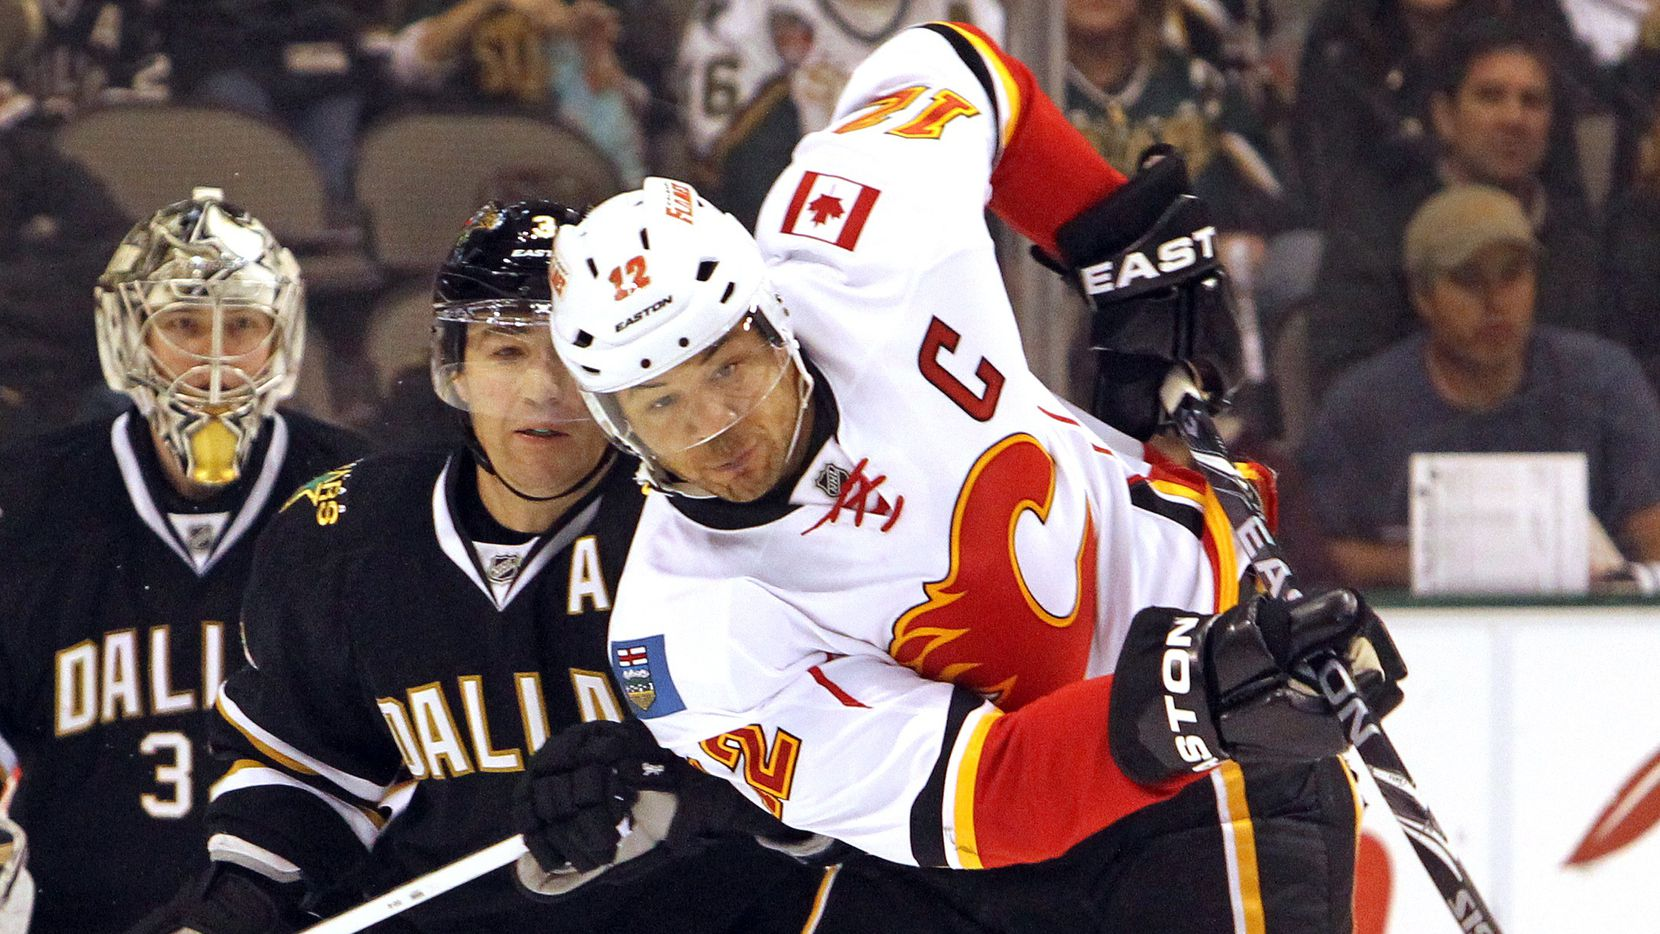 Calgary's Jarome Iginla (12) tries to redirect the puck as Dallas' Stephane Robidas (3) defends in the second period during the Dallas Stars vs. the Calgary Flames NHL hockey game at the American Airlines Center on Saturday, March 24, 2012.